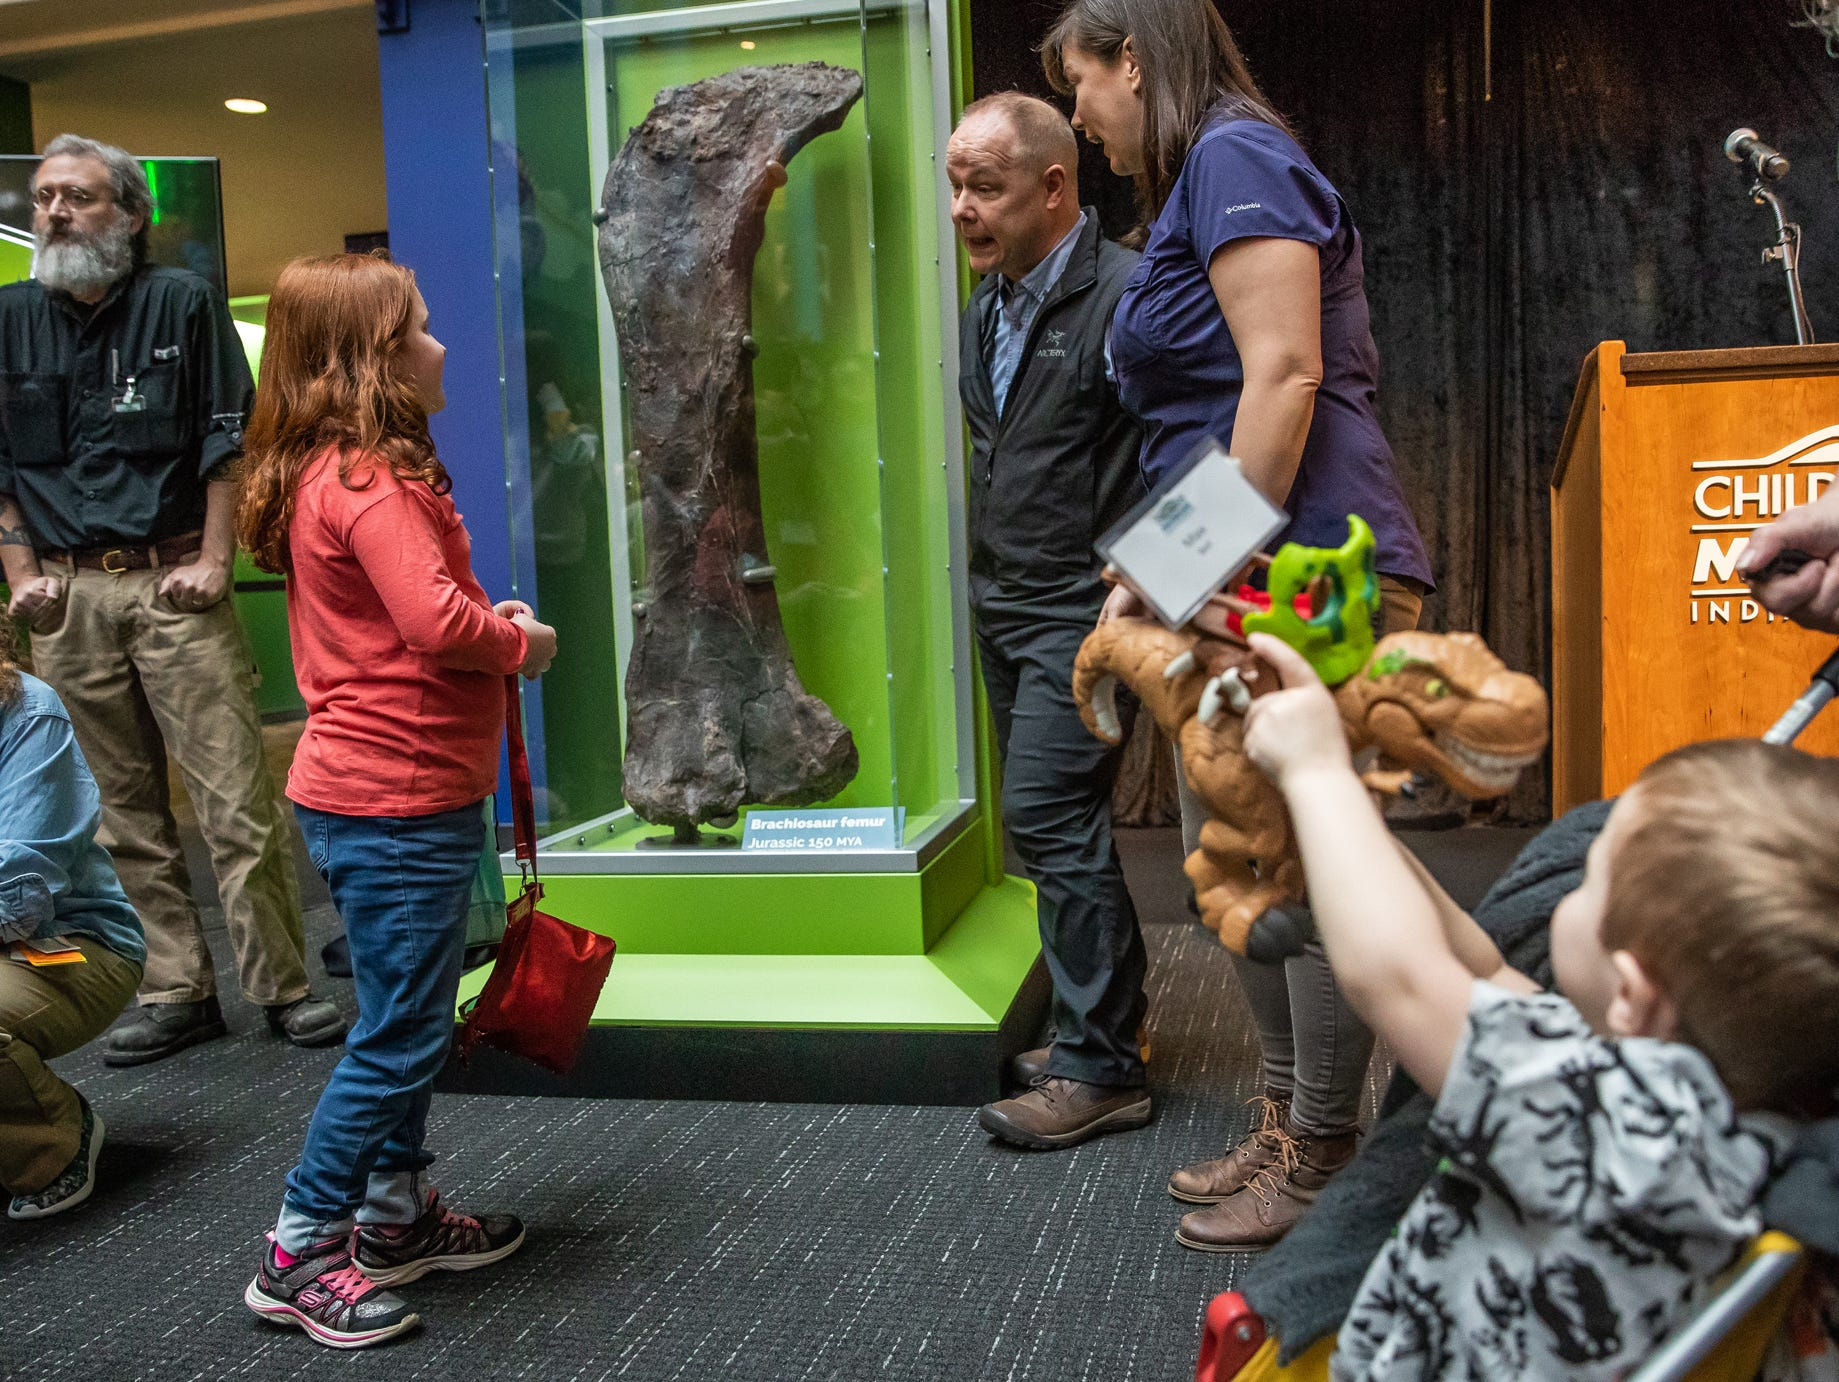 Hailey Bell, 8, (left) talks with Professor Phil Manning (middle), a Children's Museum of Indianapolis scientist-in-residence, and Dr. Victoria Egerton, a Children's Museum of Indianapolis scientist-in-residence, about the newly discovered femur of a Brachiosaur at the Children's Museum of Indianapolis on Monday, March 25, 2019. Bell's brother, Max, was showing off his Tyrannosaurus Rex toy.